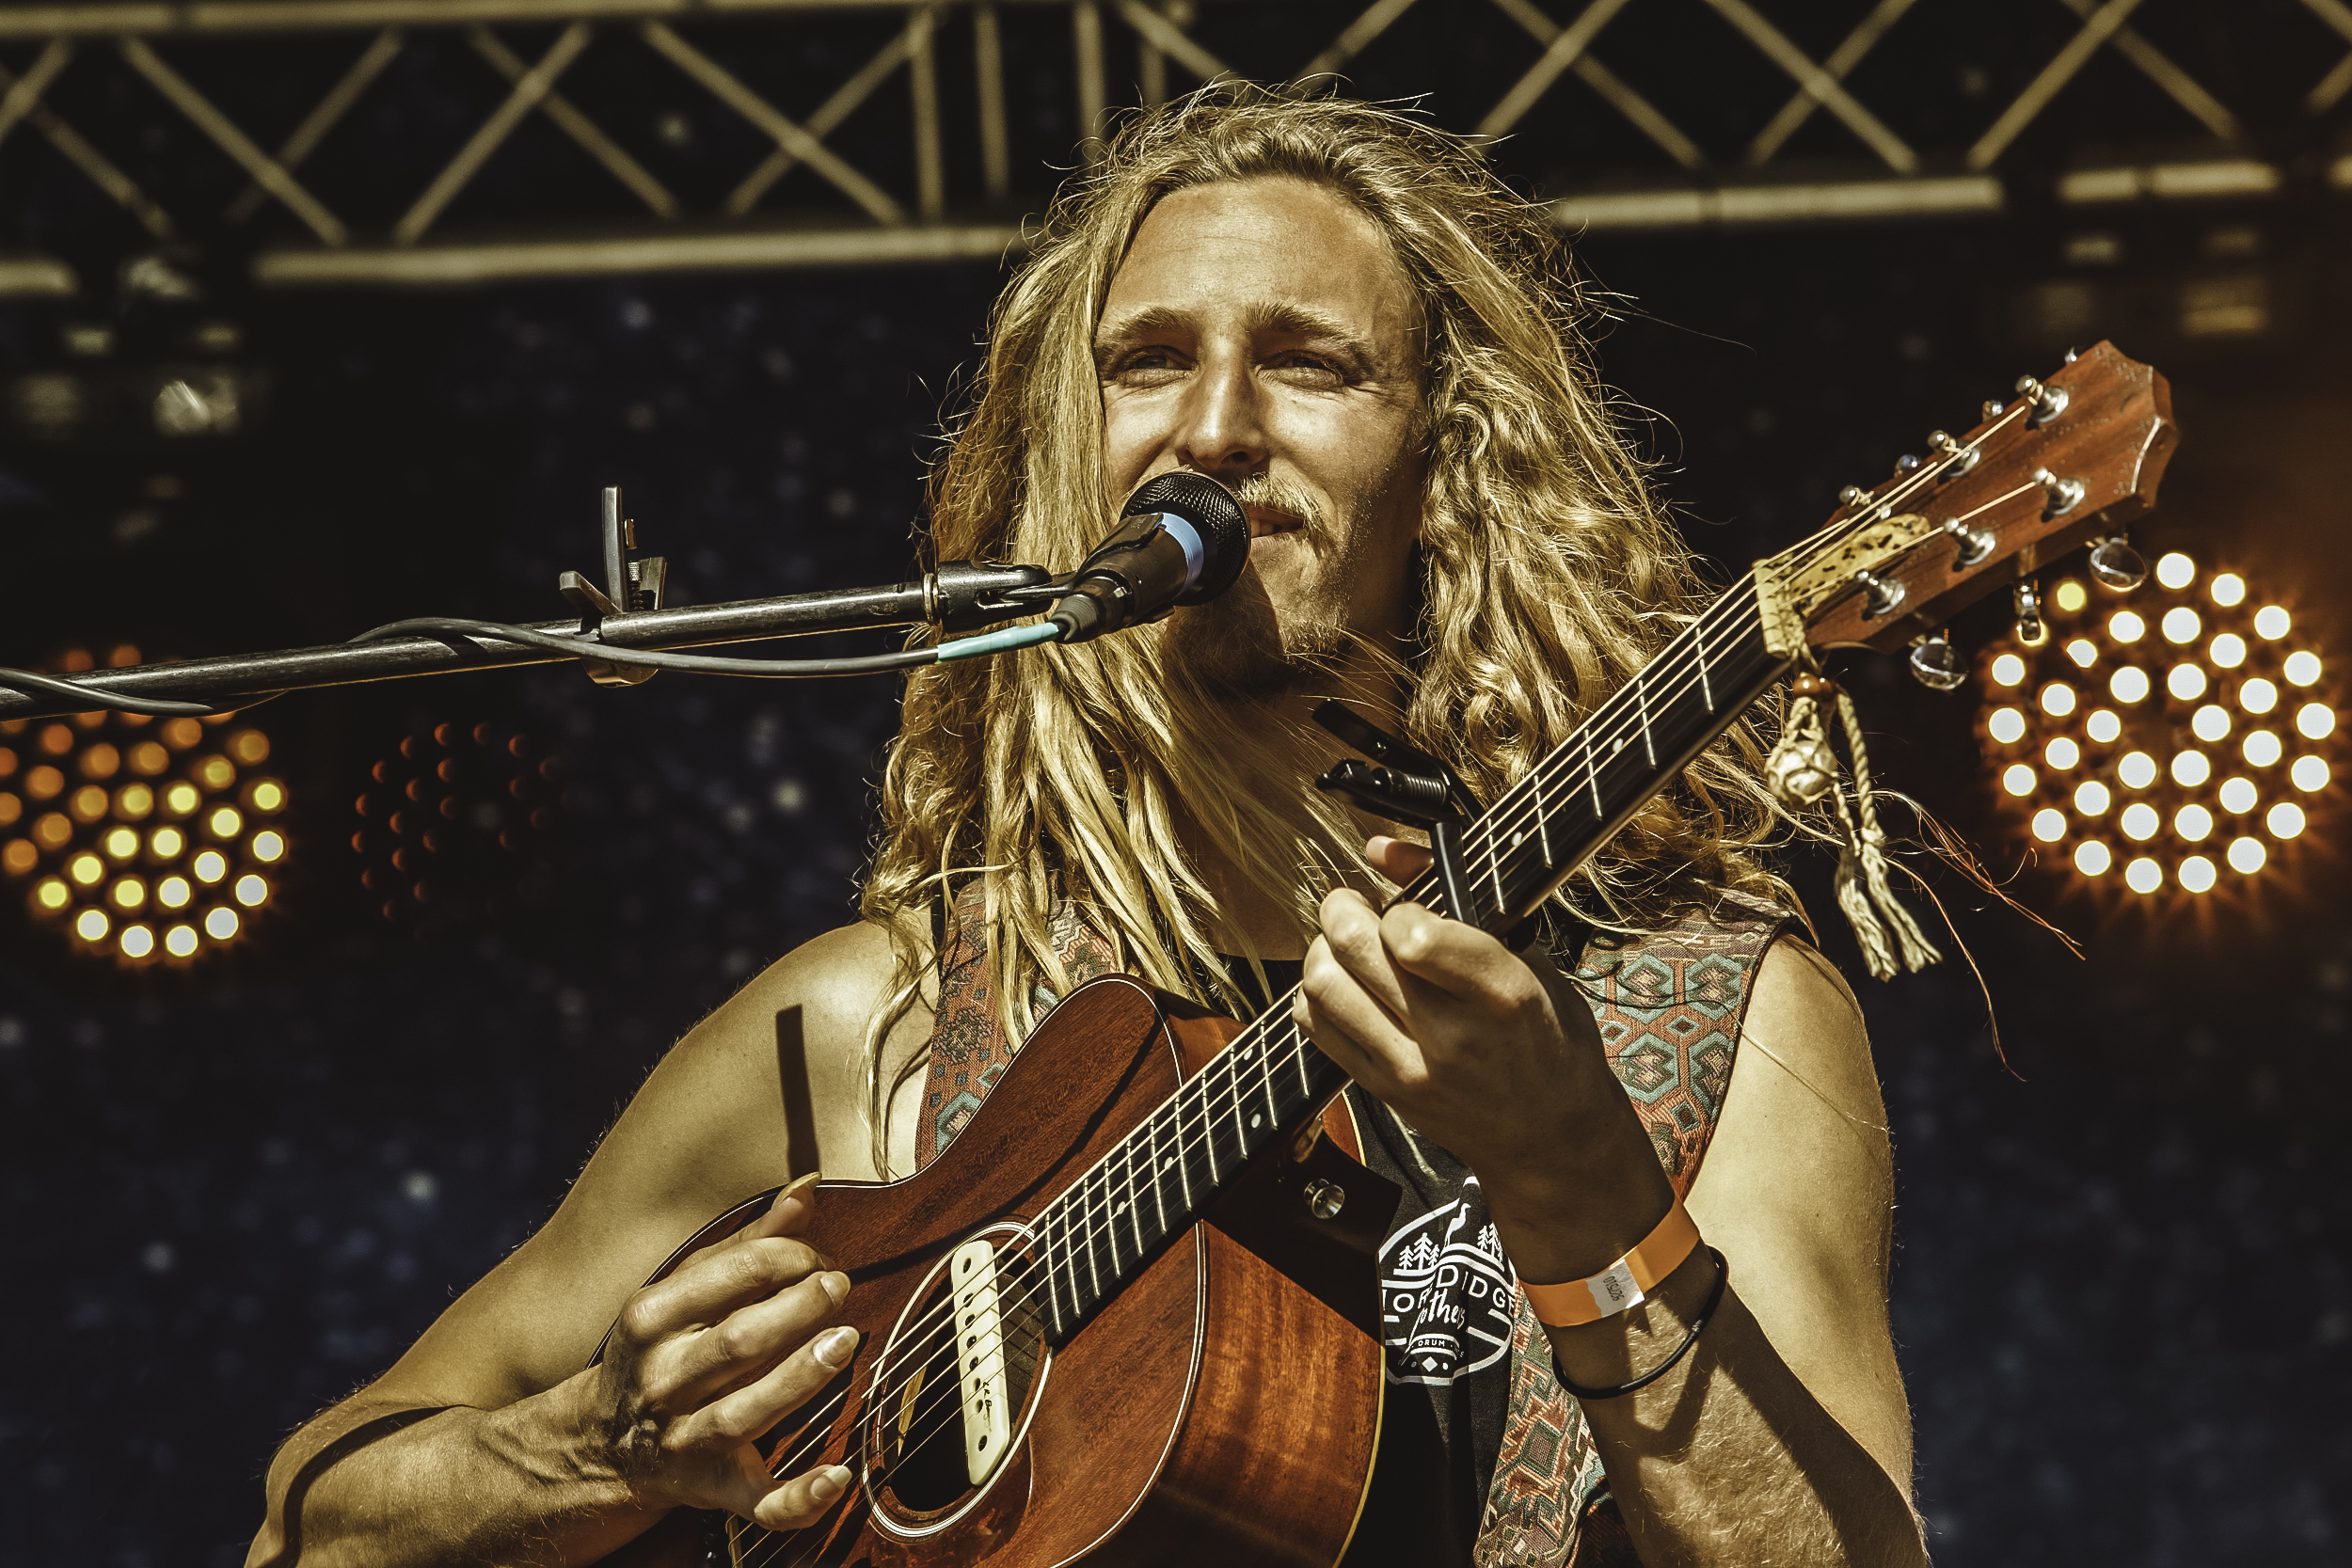 Supporting Xavier Rudd